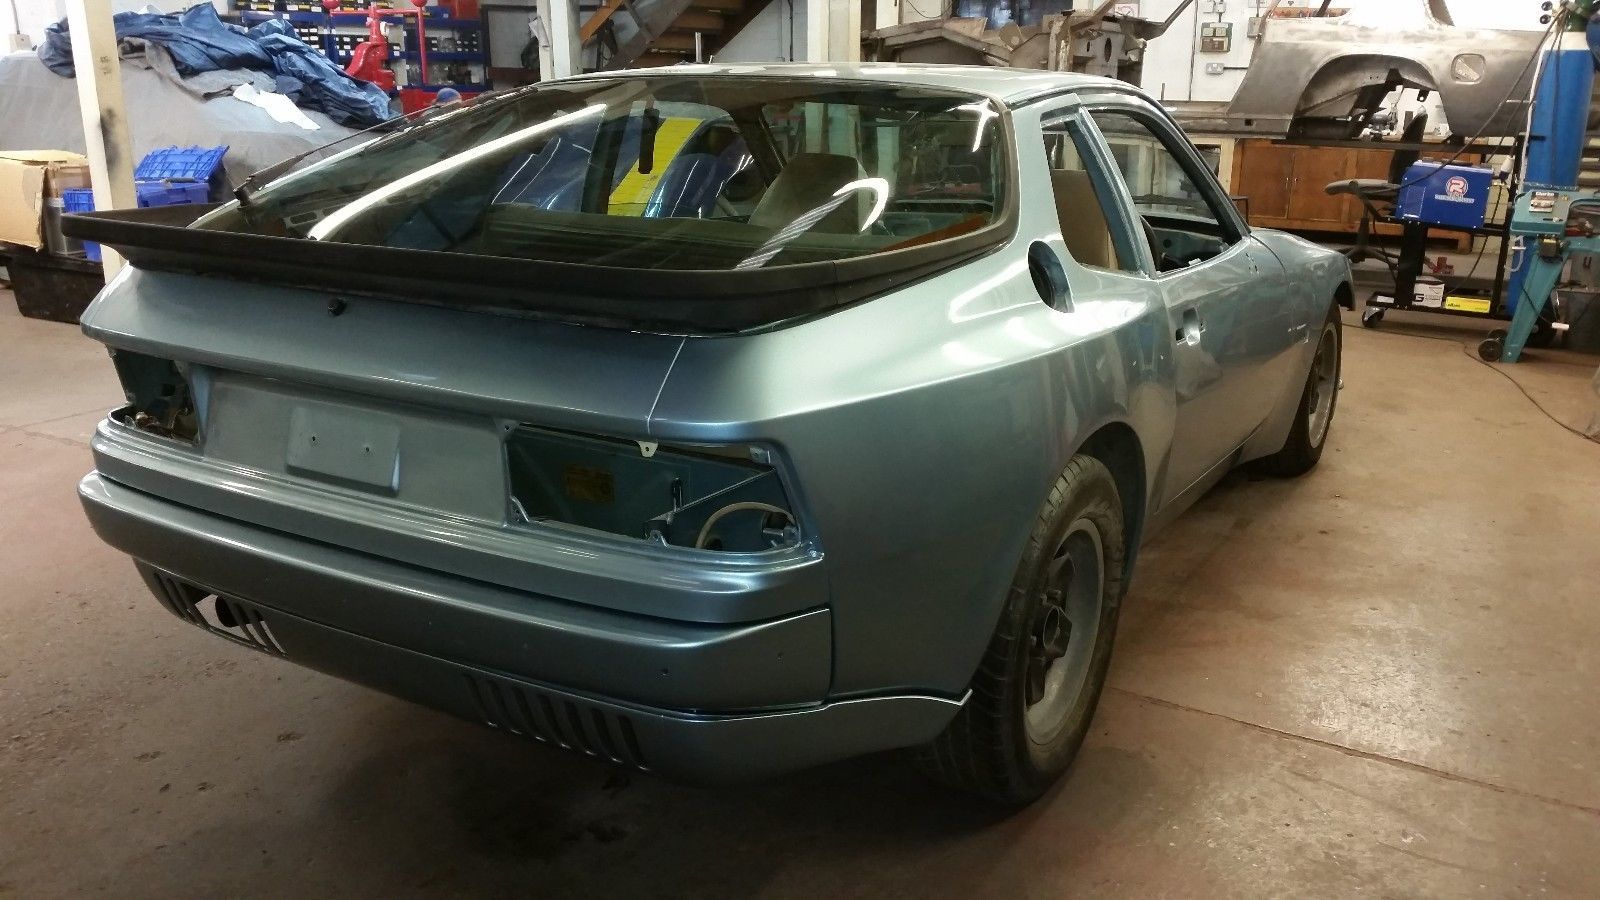 Porsche 944 - 1982 - Unfinished Project   Cars and Vehicle